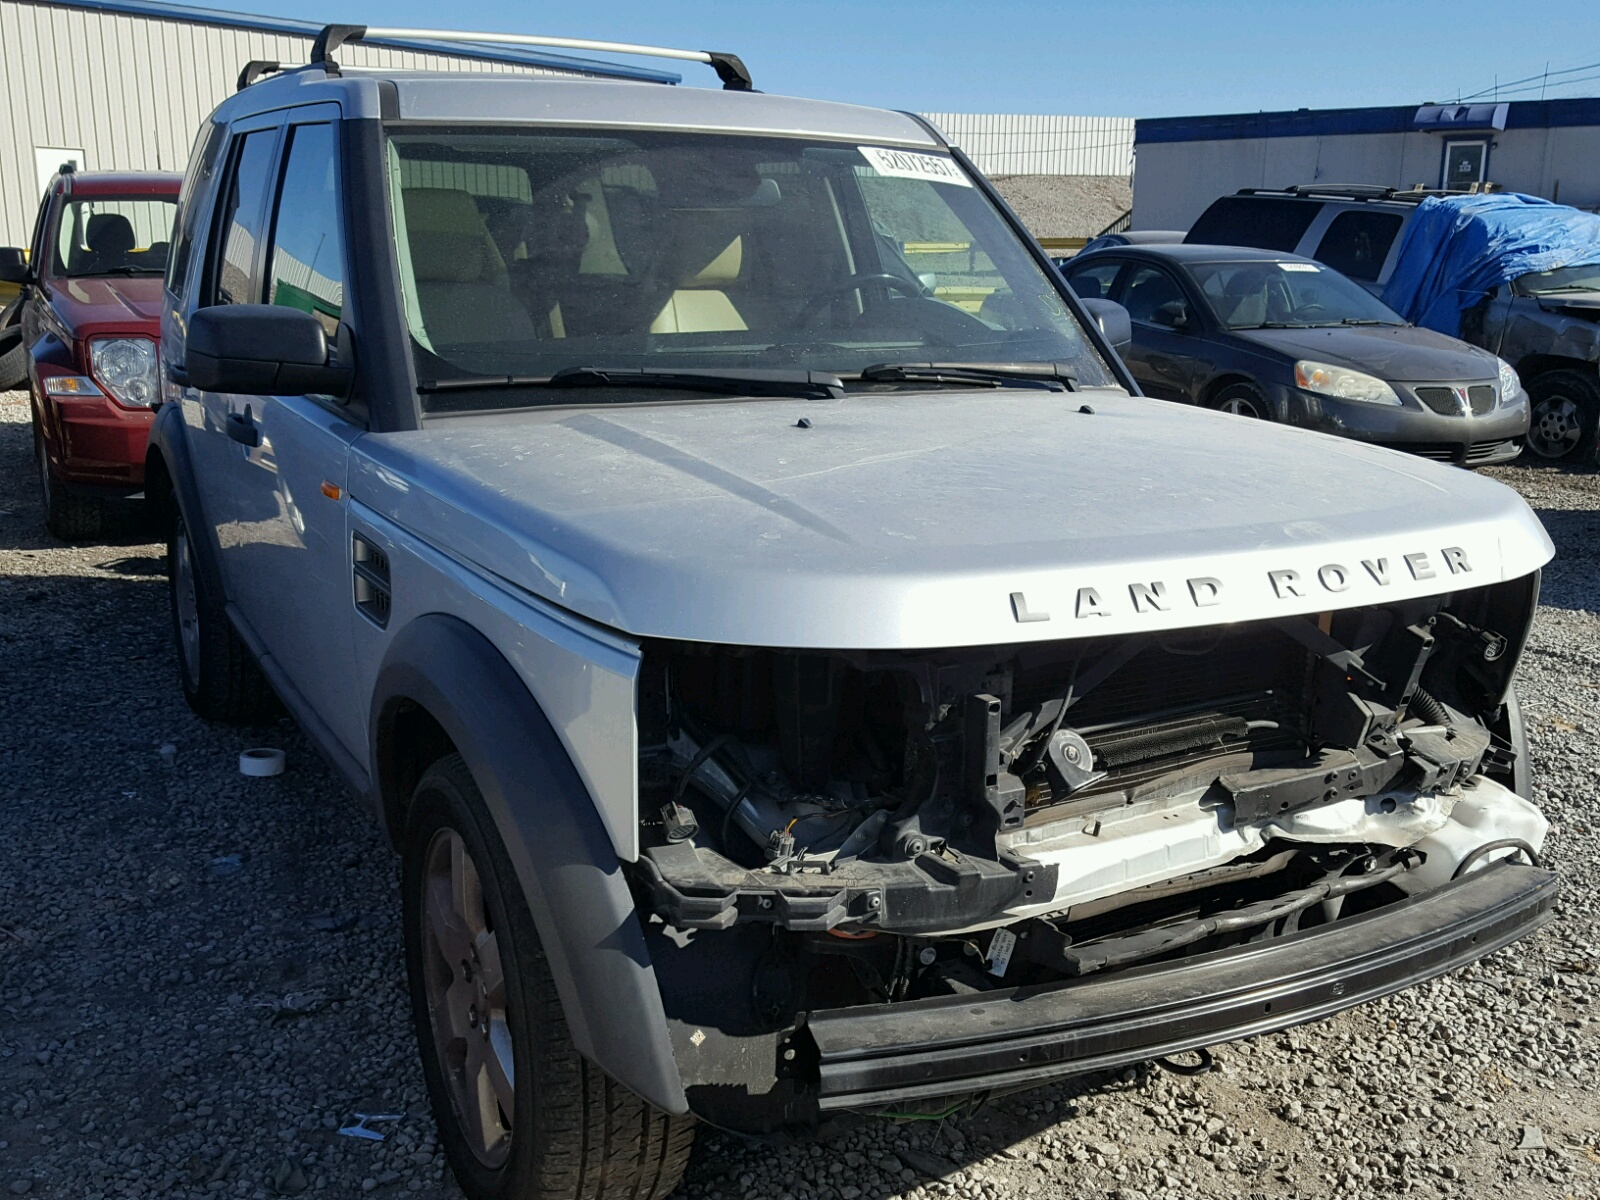 on north certificate copart auctions title boston rover hse of online en right for carfinder land sale auto landrover in silver lot view ma